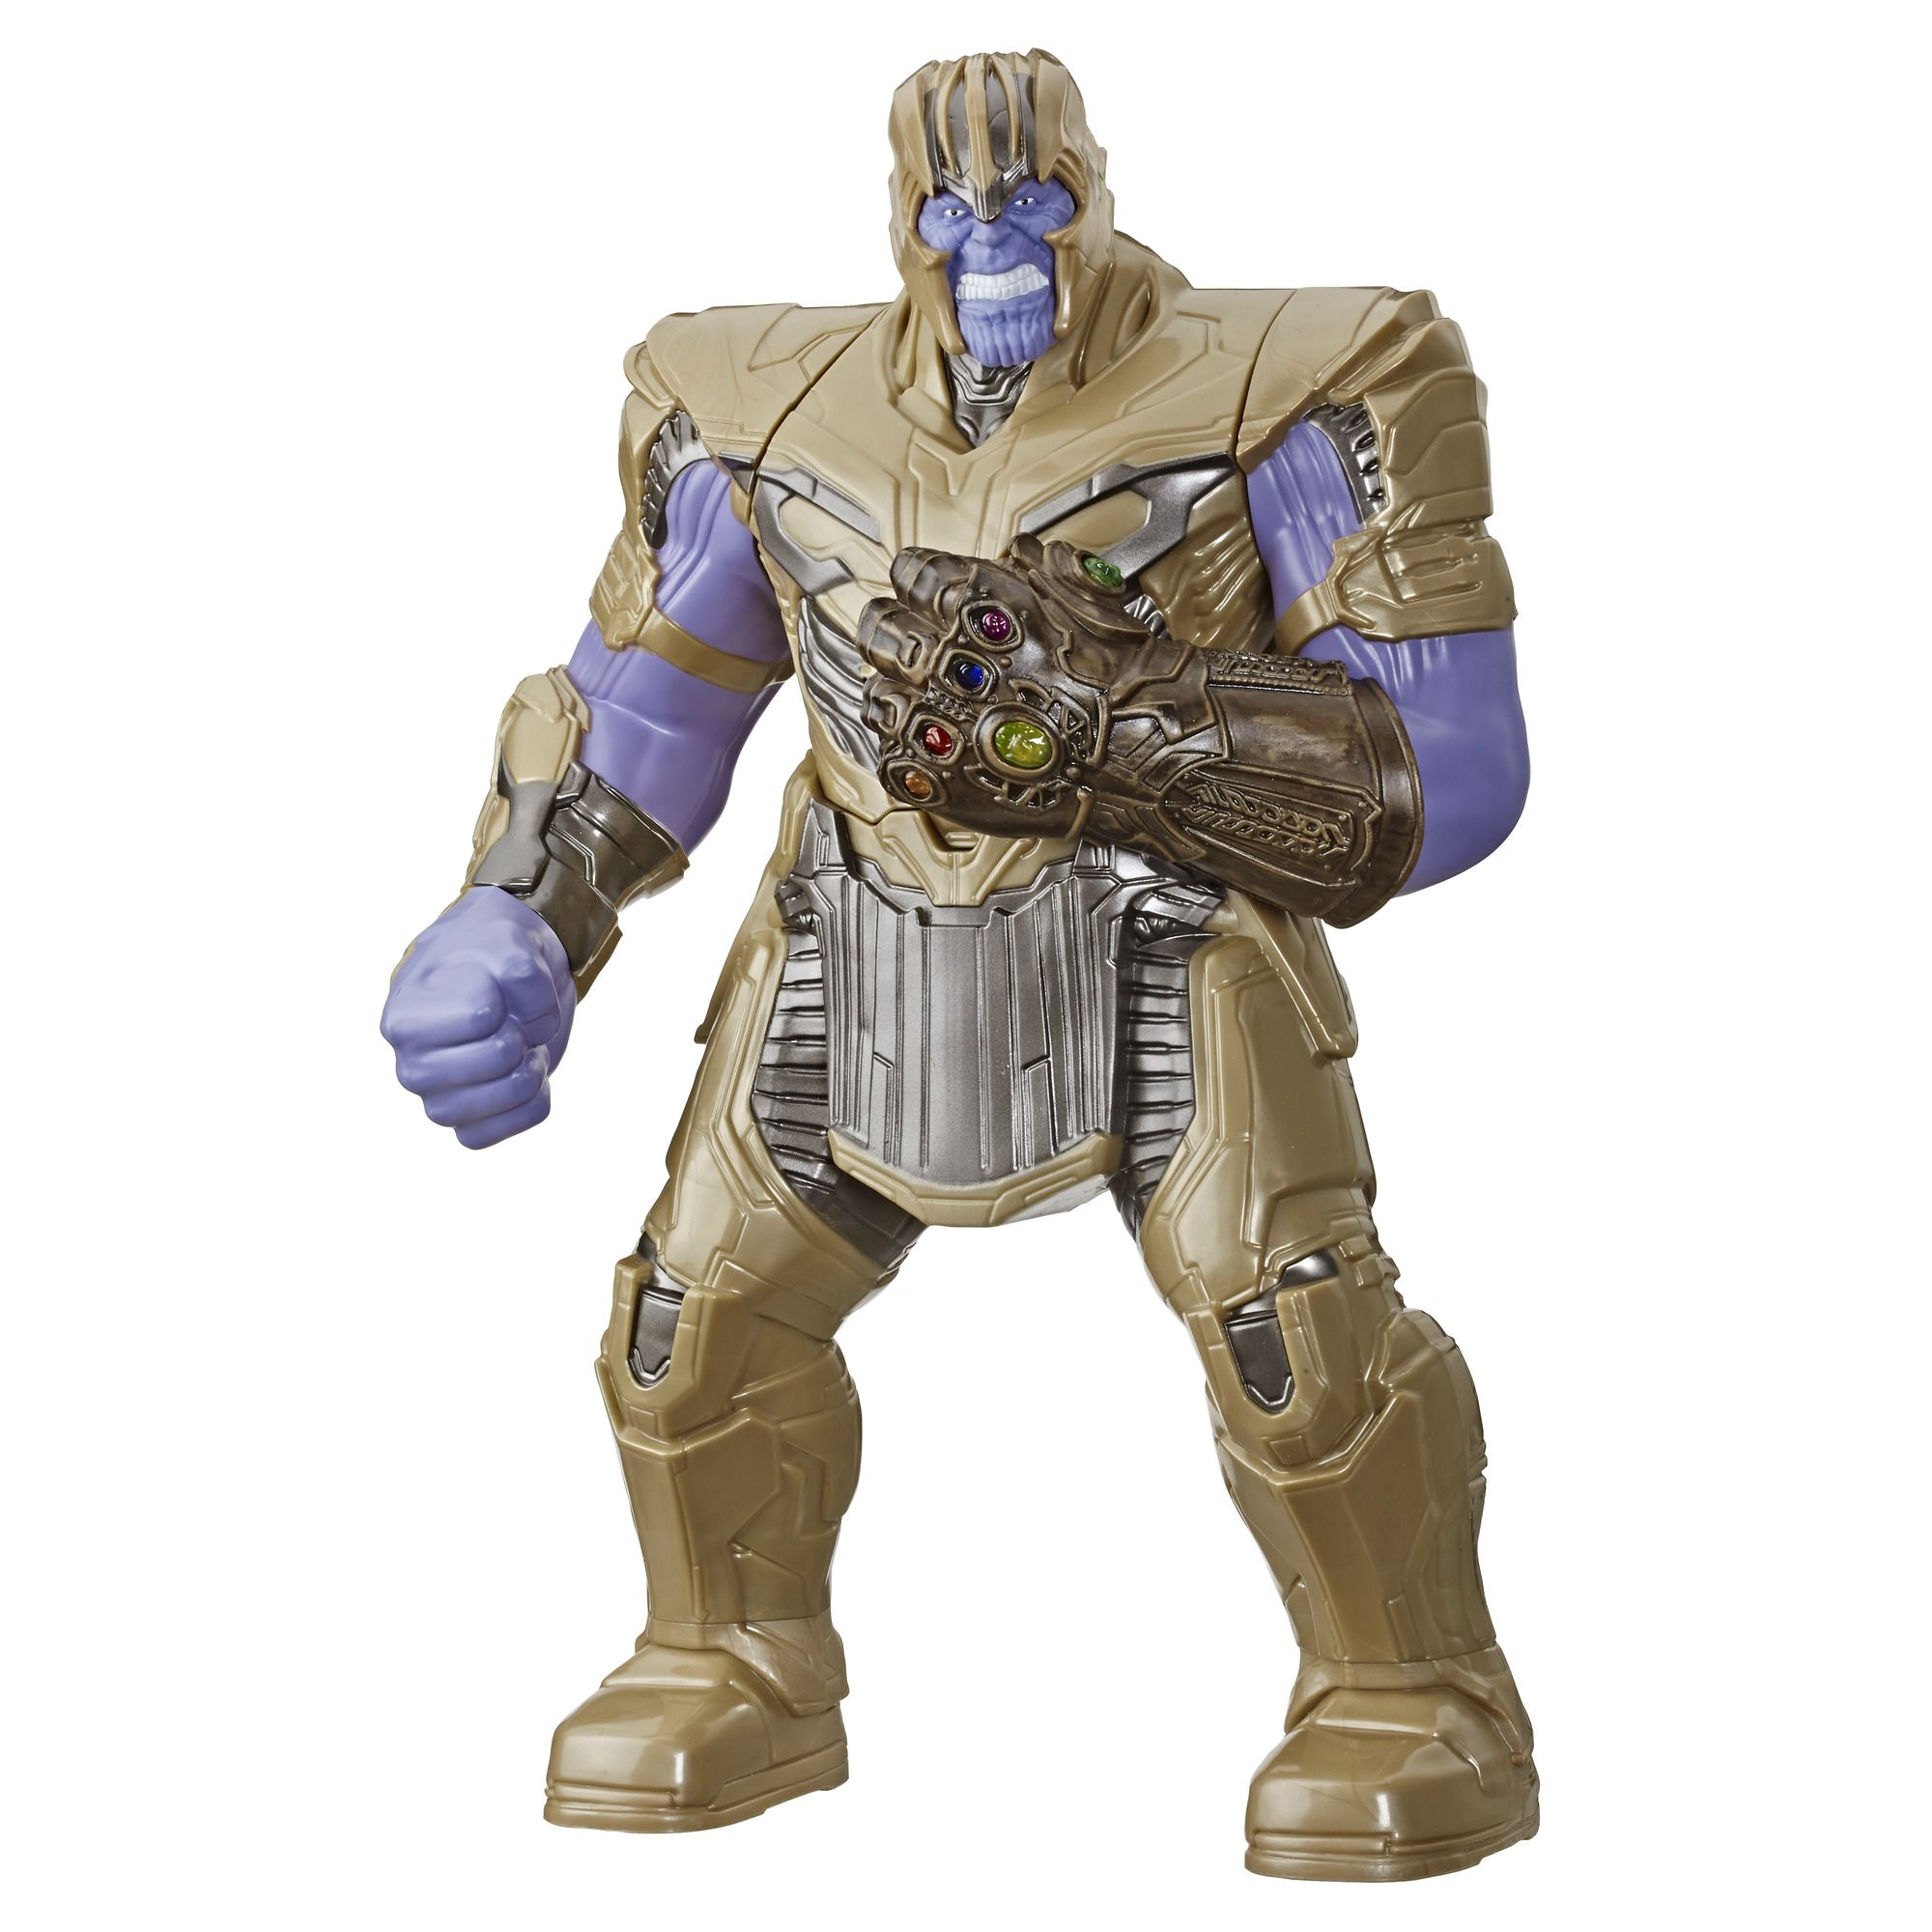 Marvel Avengers Endgame Power Punch 13 75 In Thanos 20 Sounds Walmart Com In 2020 Avengers Marvel Figure Marvel For a captain america costume, you'd just have to look at posters or comic books for reference on you can find a mator costume in many stores. marvel avengers endgame power punch 13